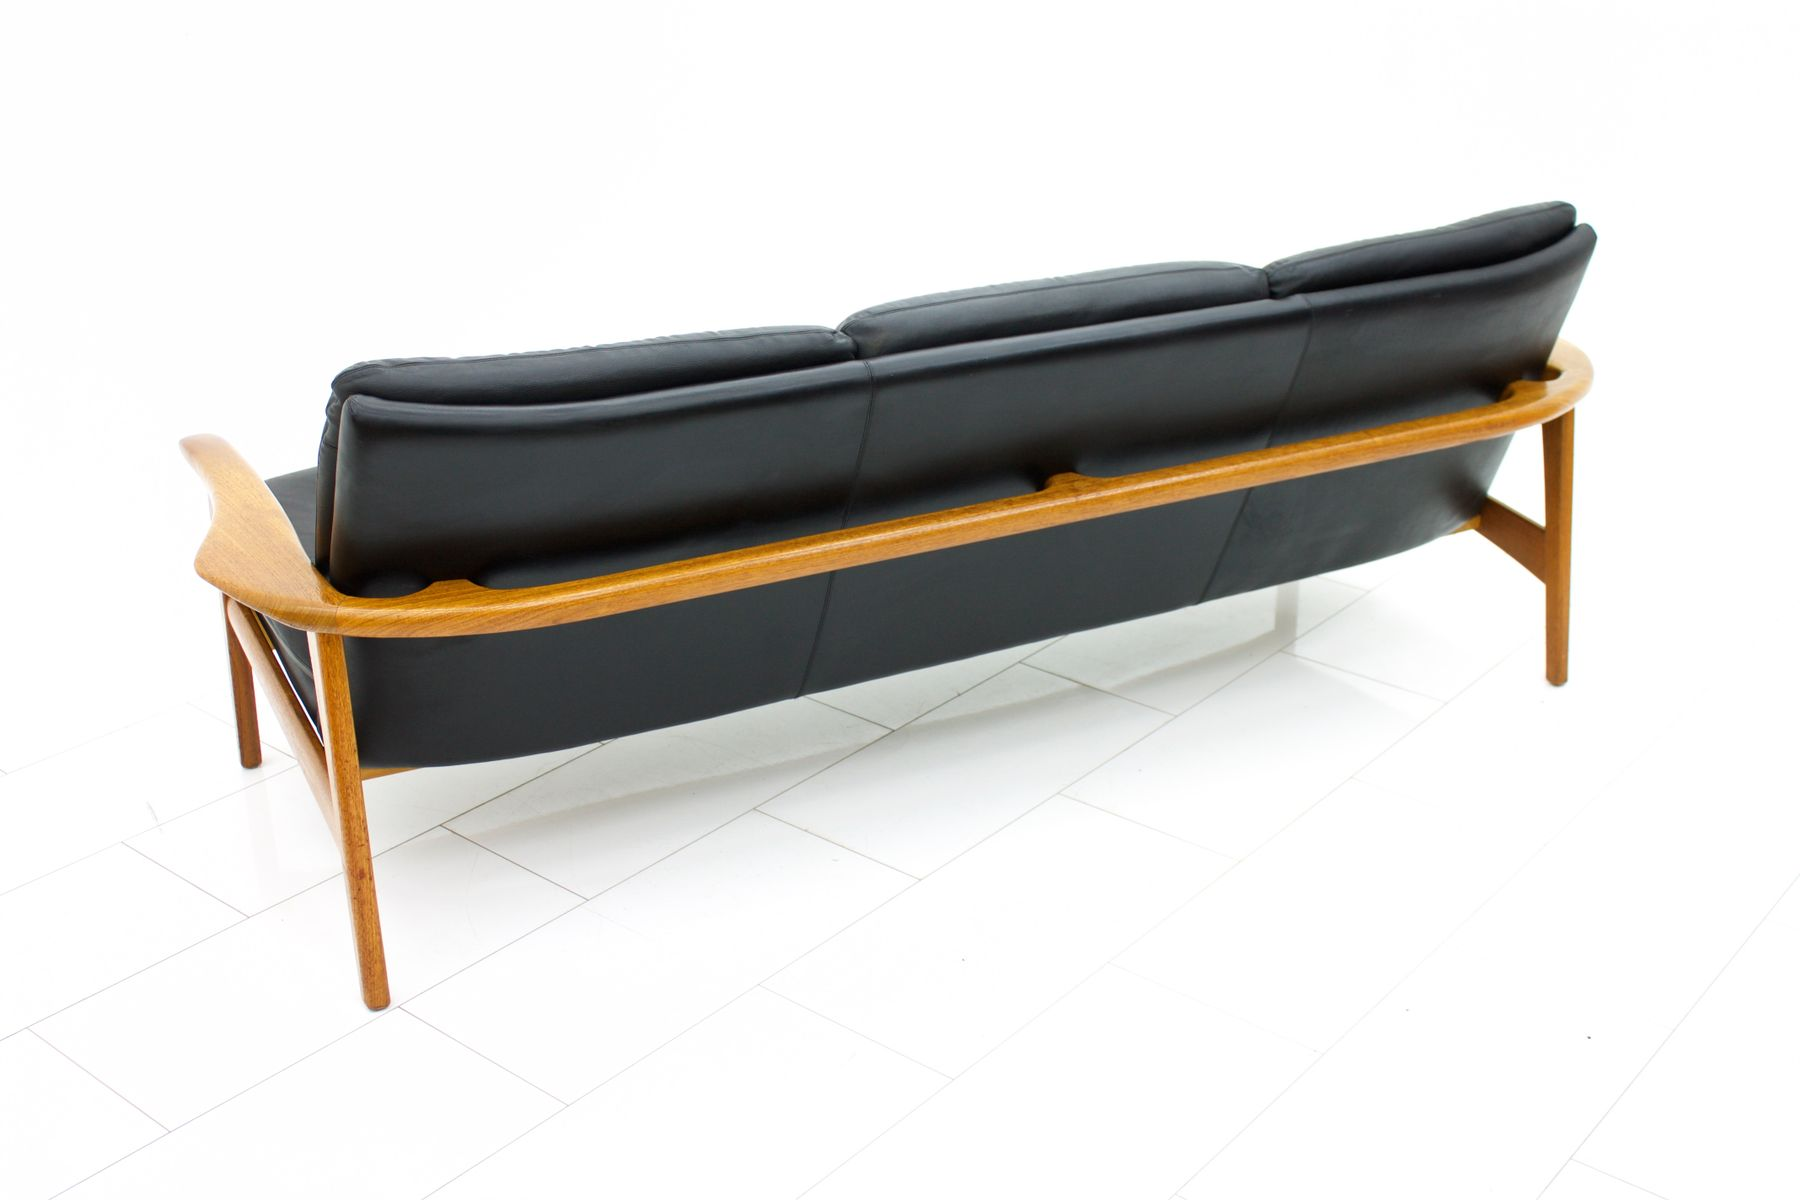 Danish Modern Teak And Leather Sofa, 1960s 9. $5,362.00. Price Per Piece